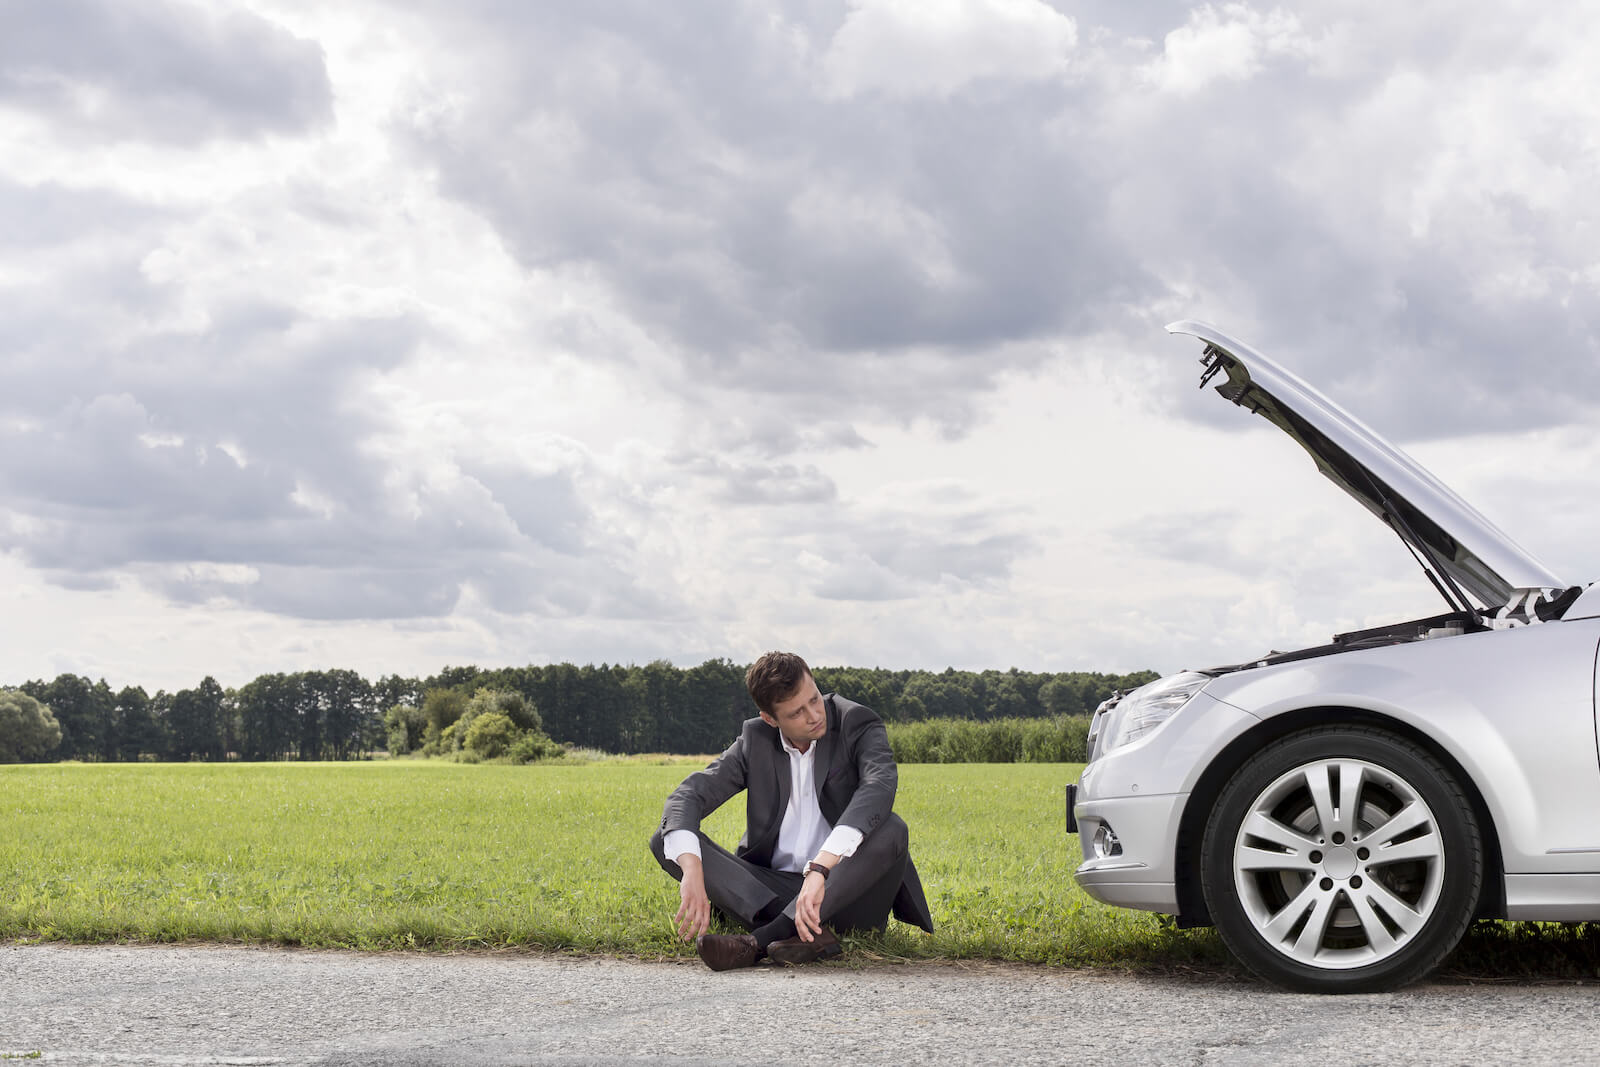 Car trouble? Chase Sapphire Reserve roadside assistance to the rescue